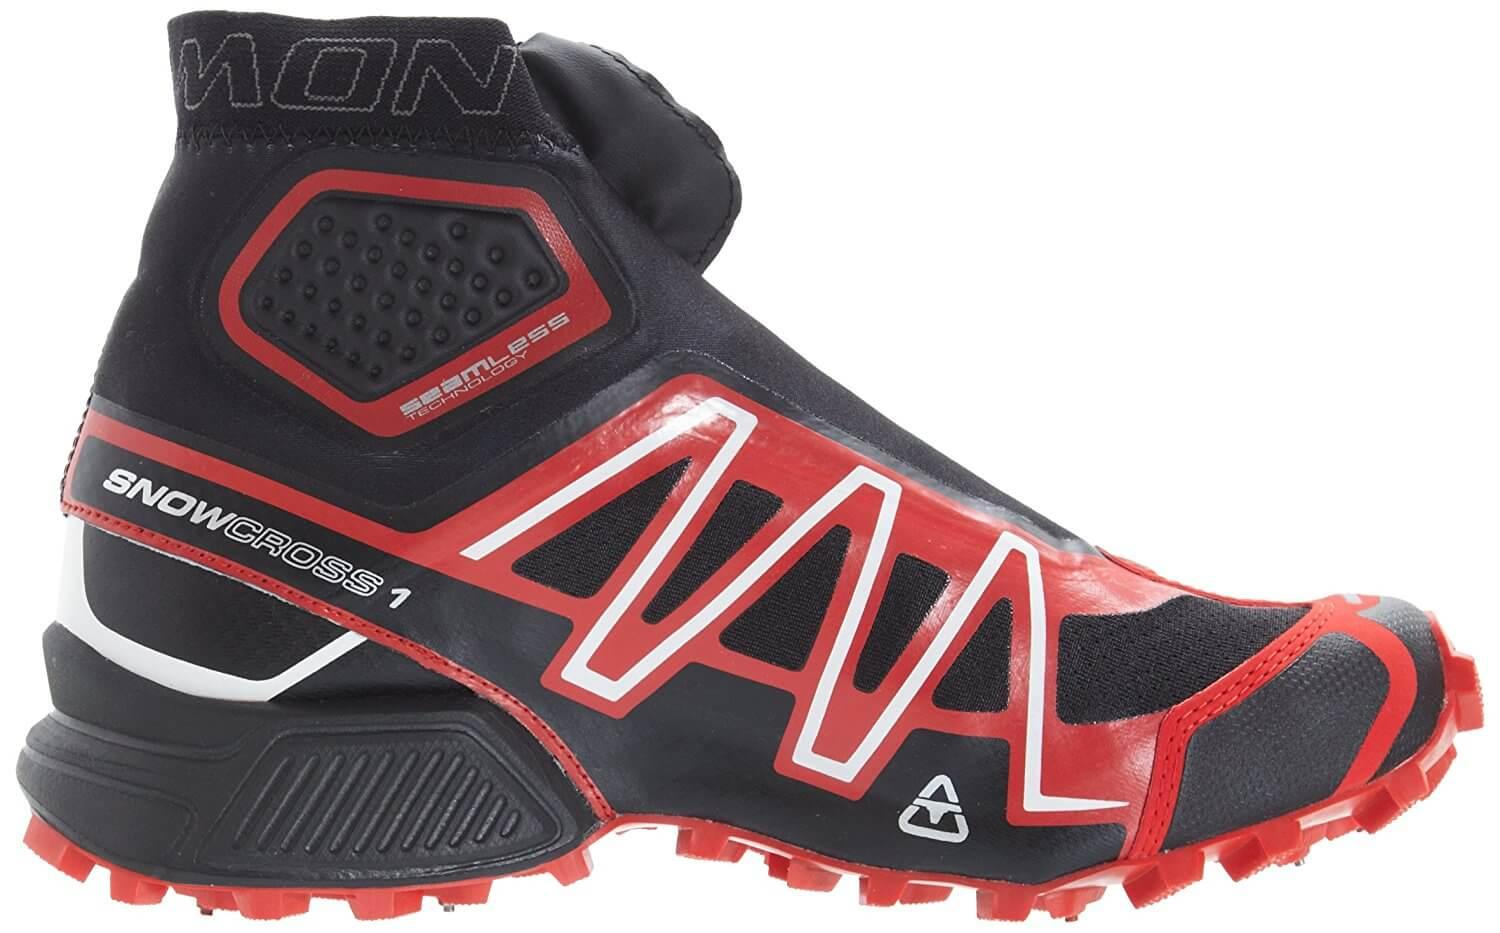 new product 5c808 72aac Salomon Snowcross CS Fully Reviewed for Quality